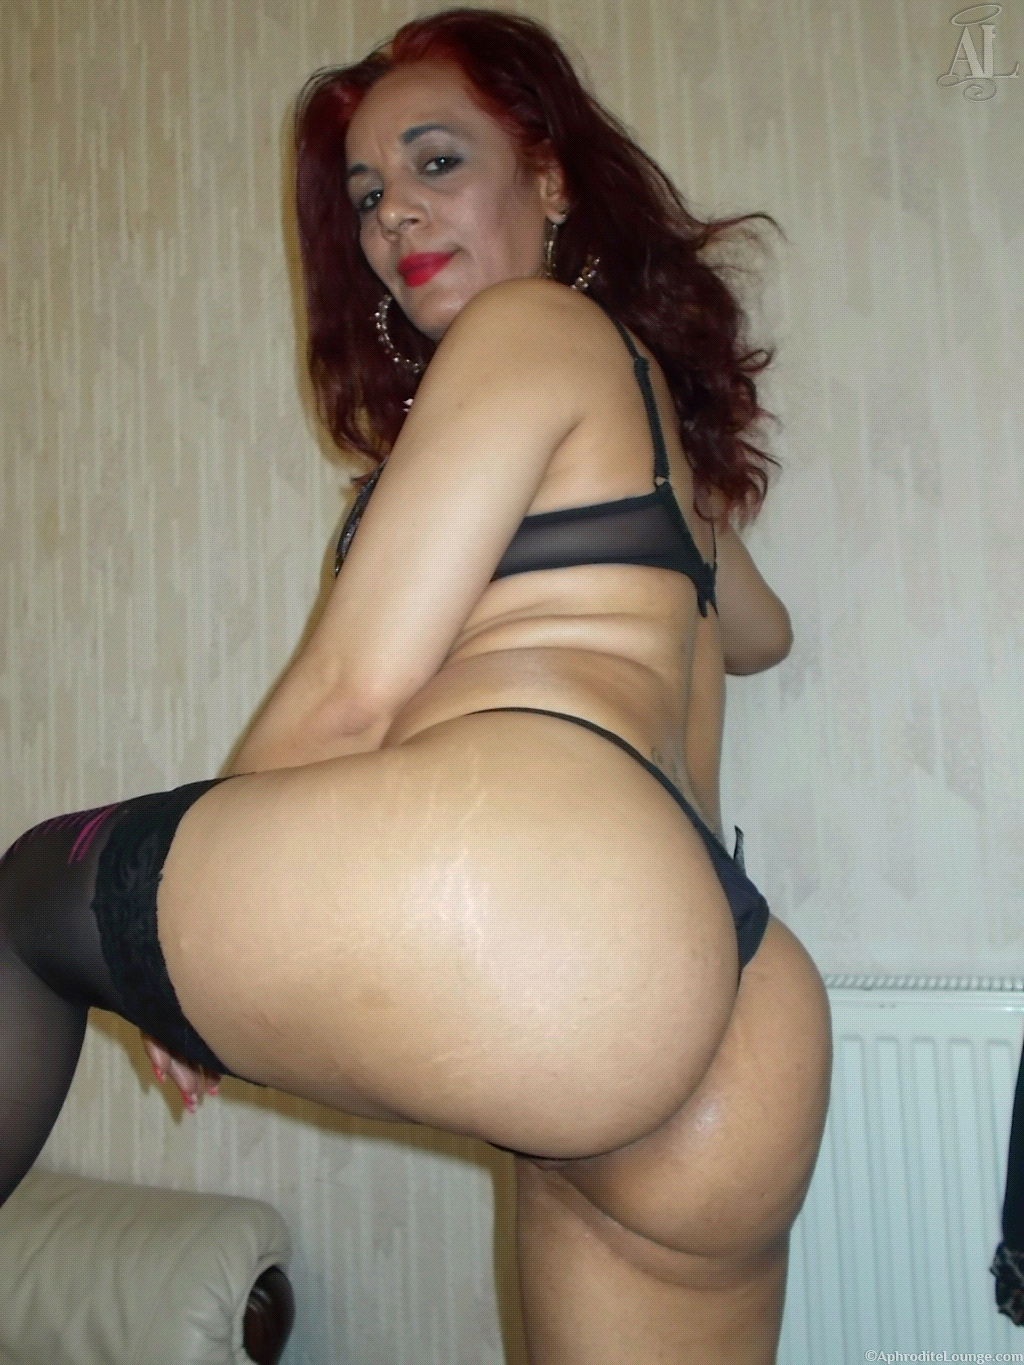 sis aj escort london